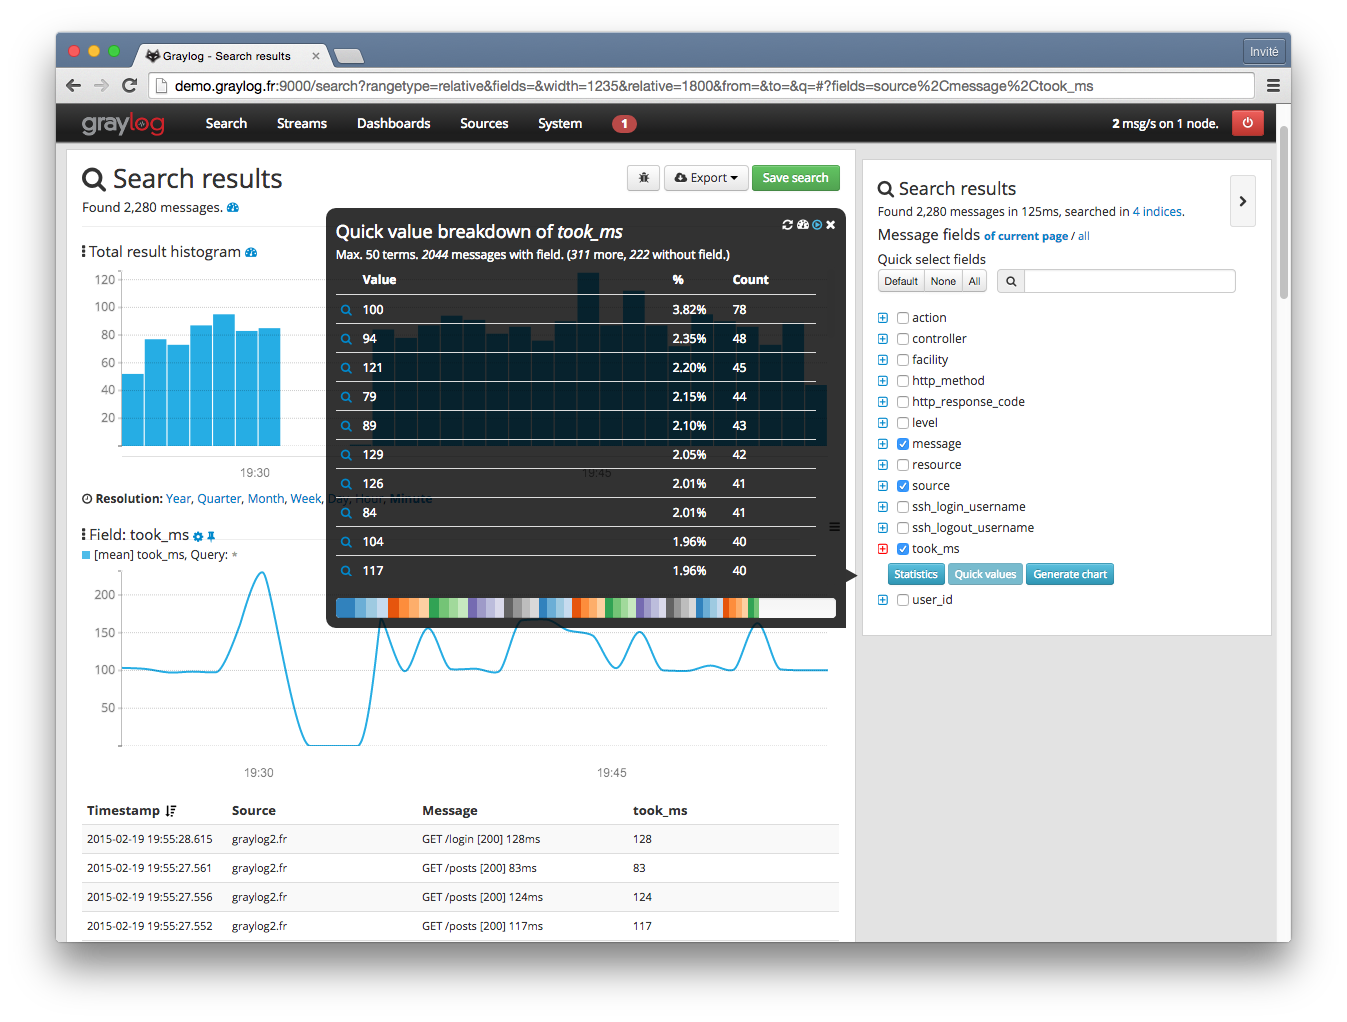 graylog-1.0-search-graph